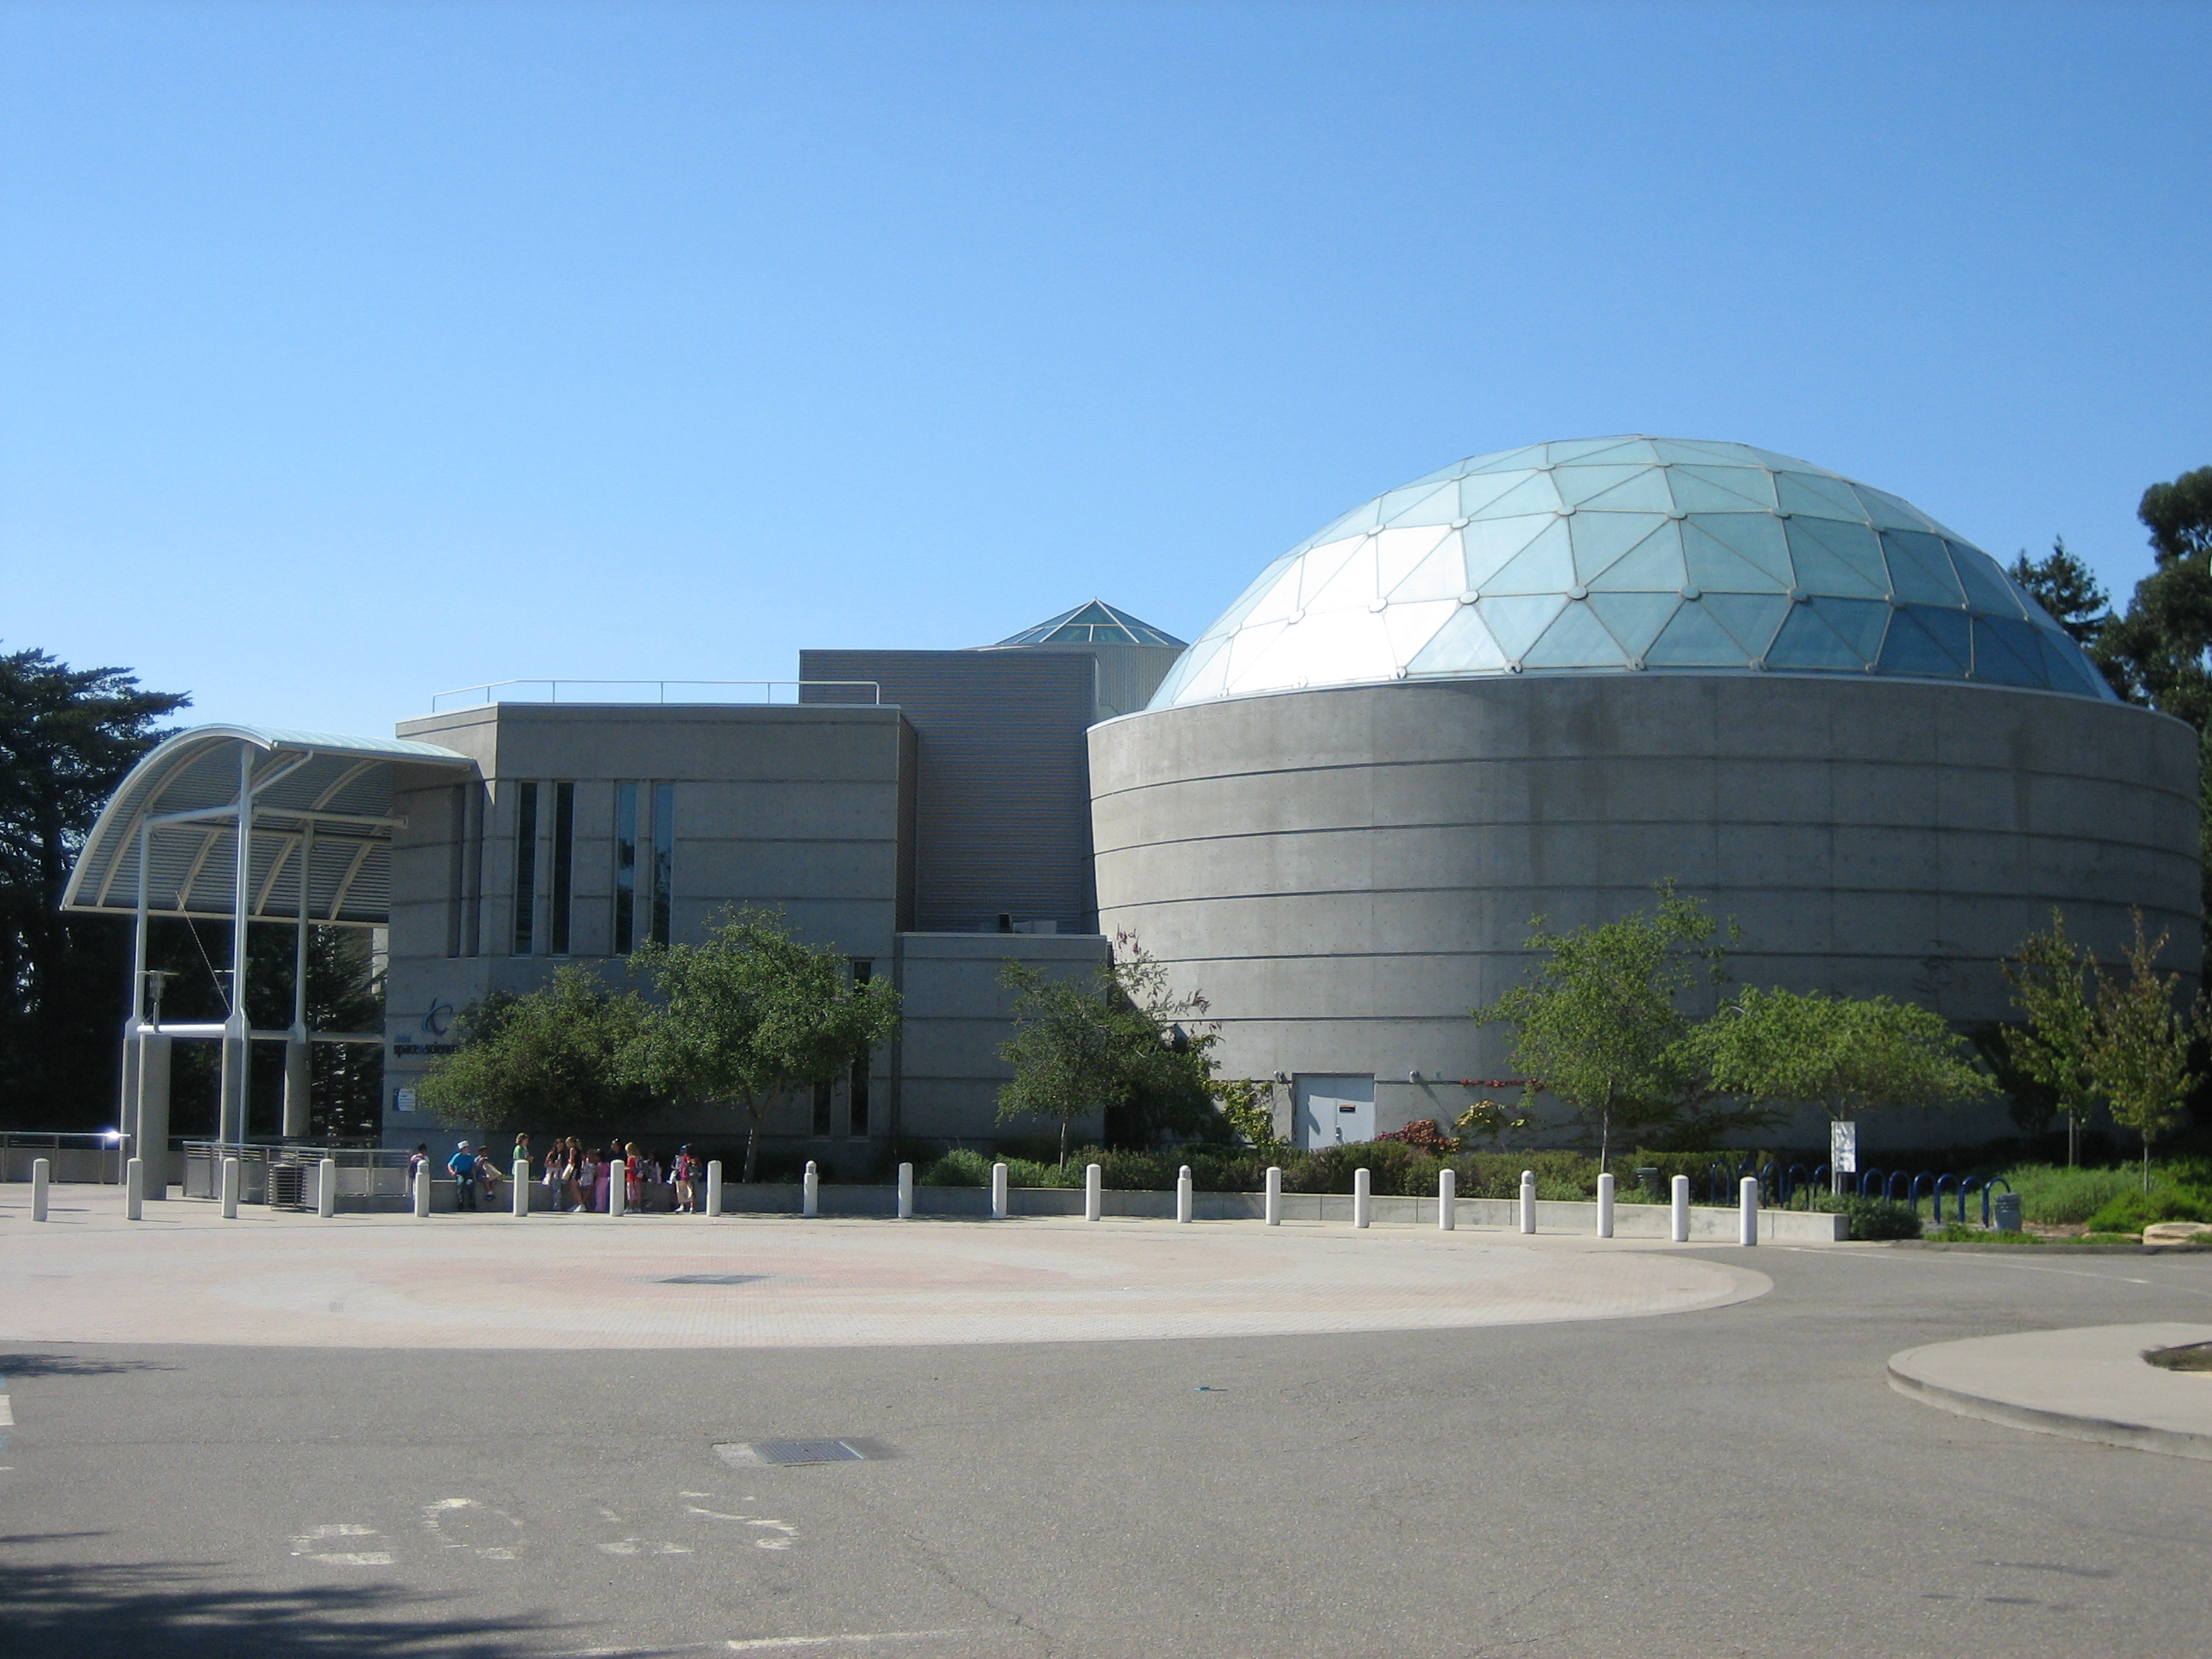 Chabot Space & Science Center entrance, source: Wikipedia